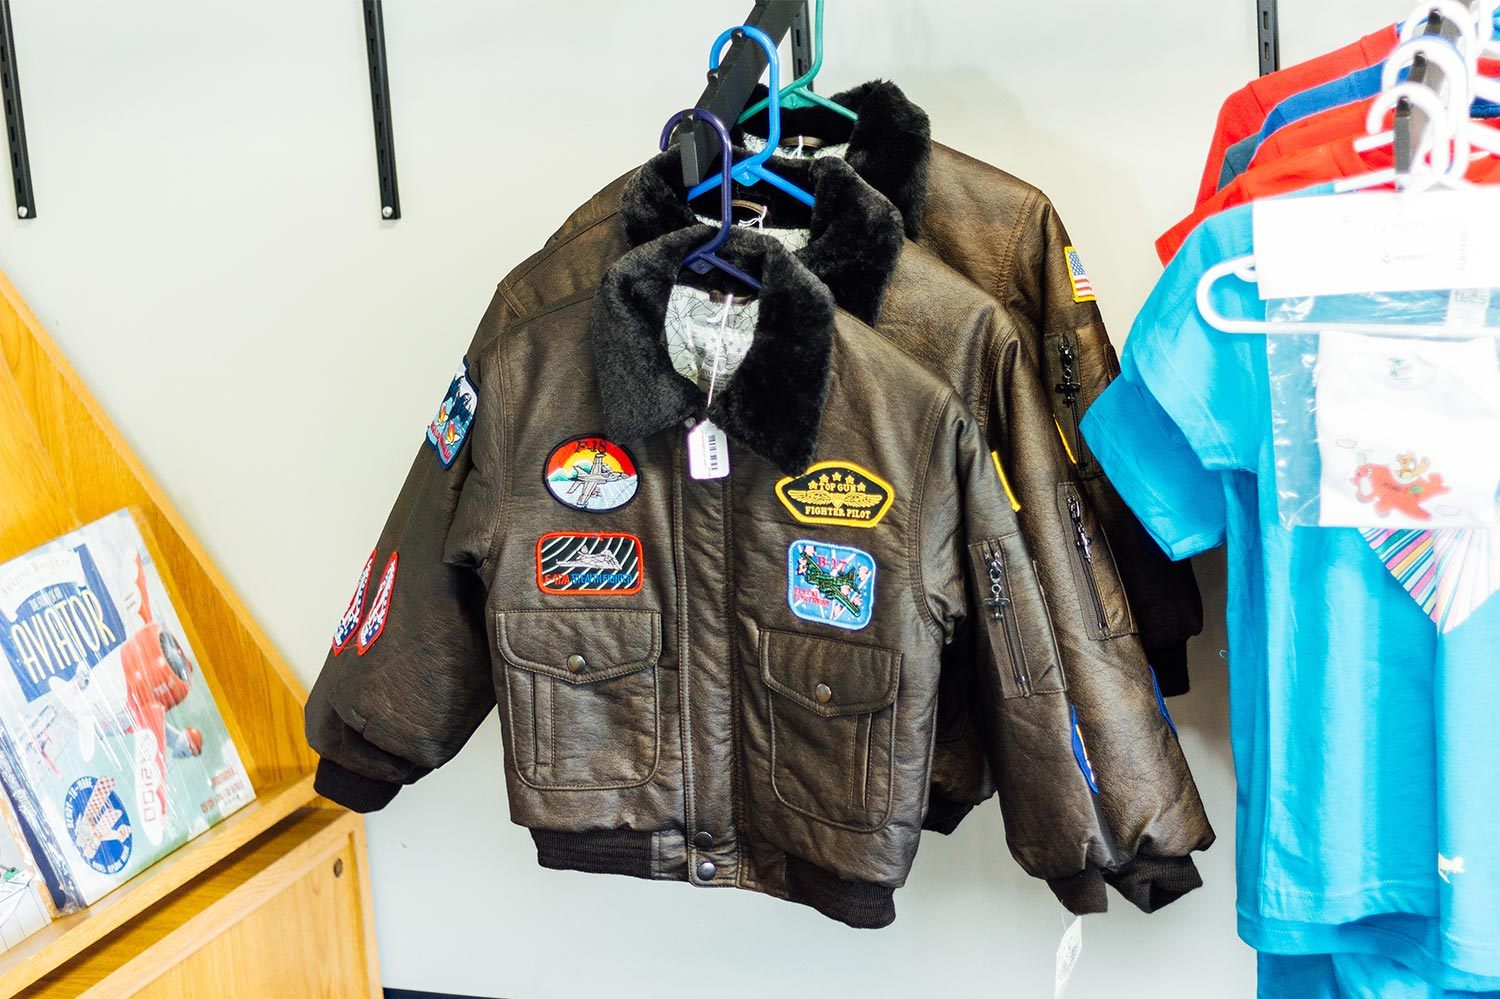 Blue-Skies-Bomber-Jacket-Pilot-Shop-Flying-Services